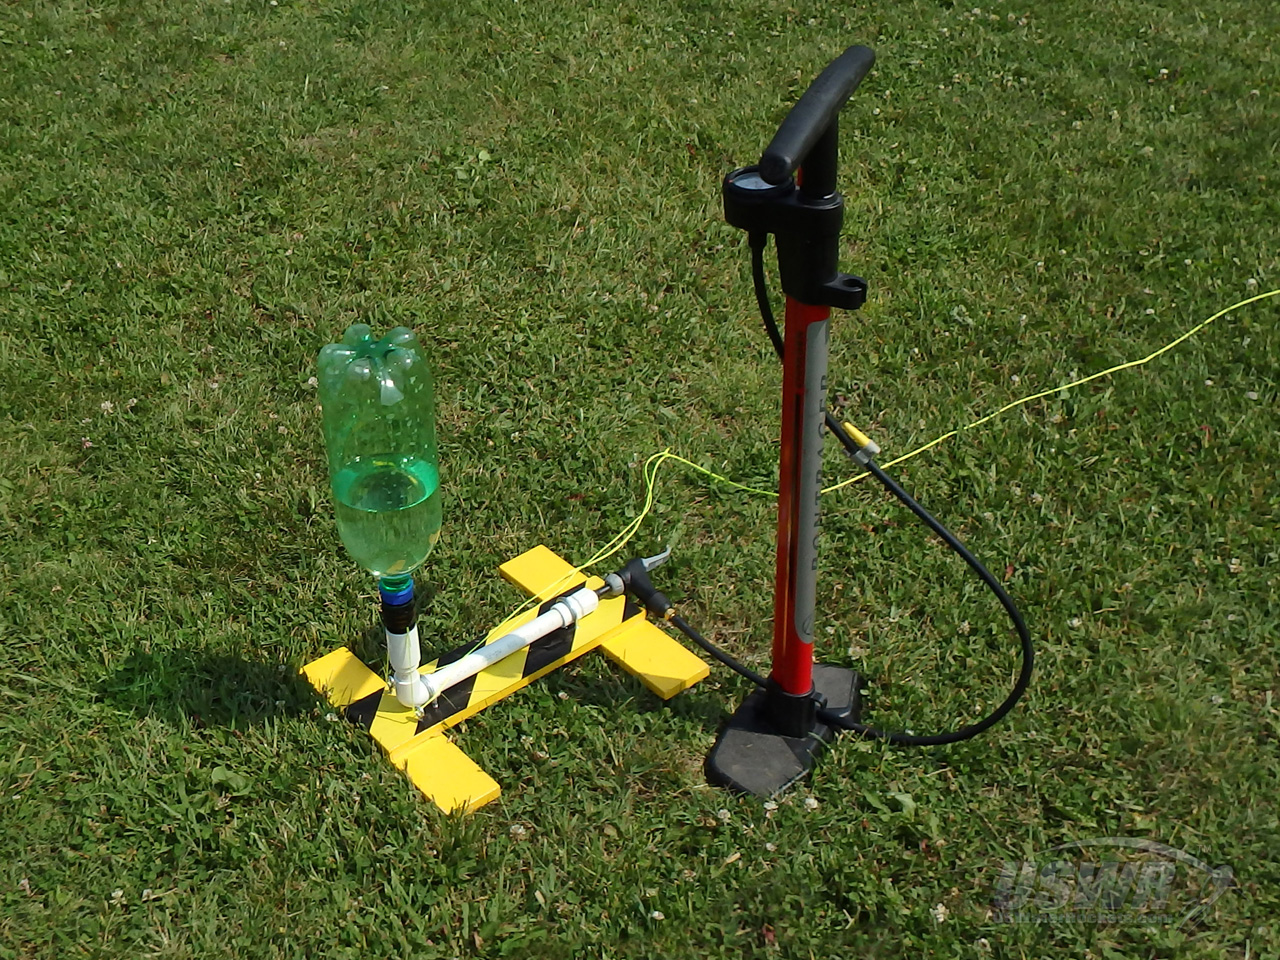 Our Finished Water Rocket Gardena Launcher Loaded With A 2 Liter Soft Drink Bottle